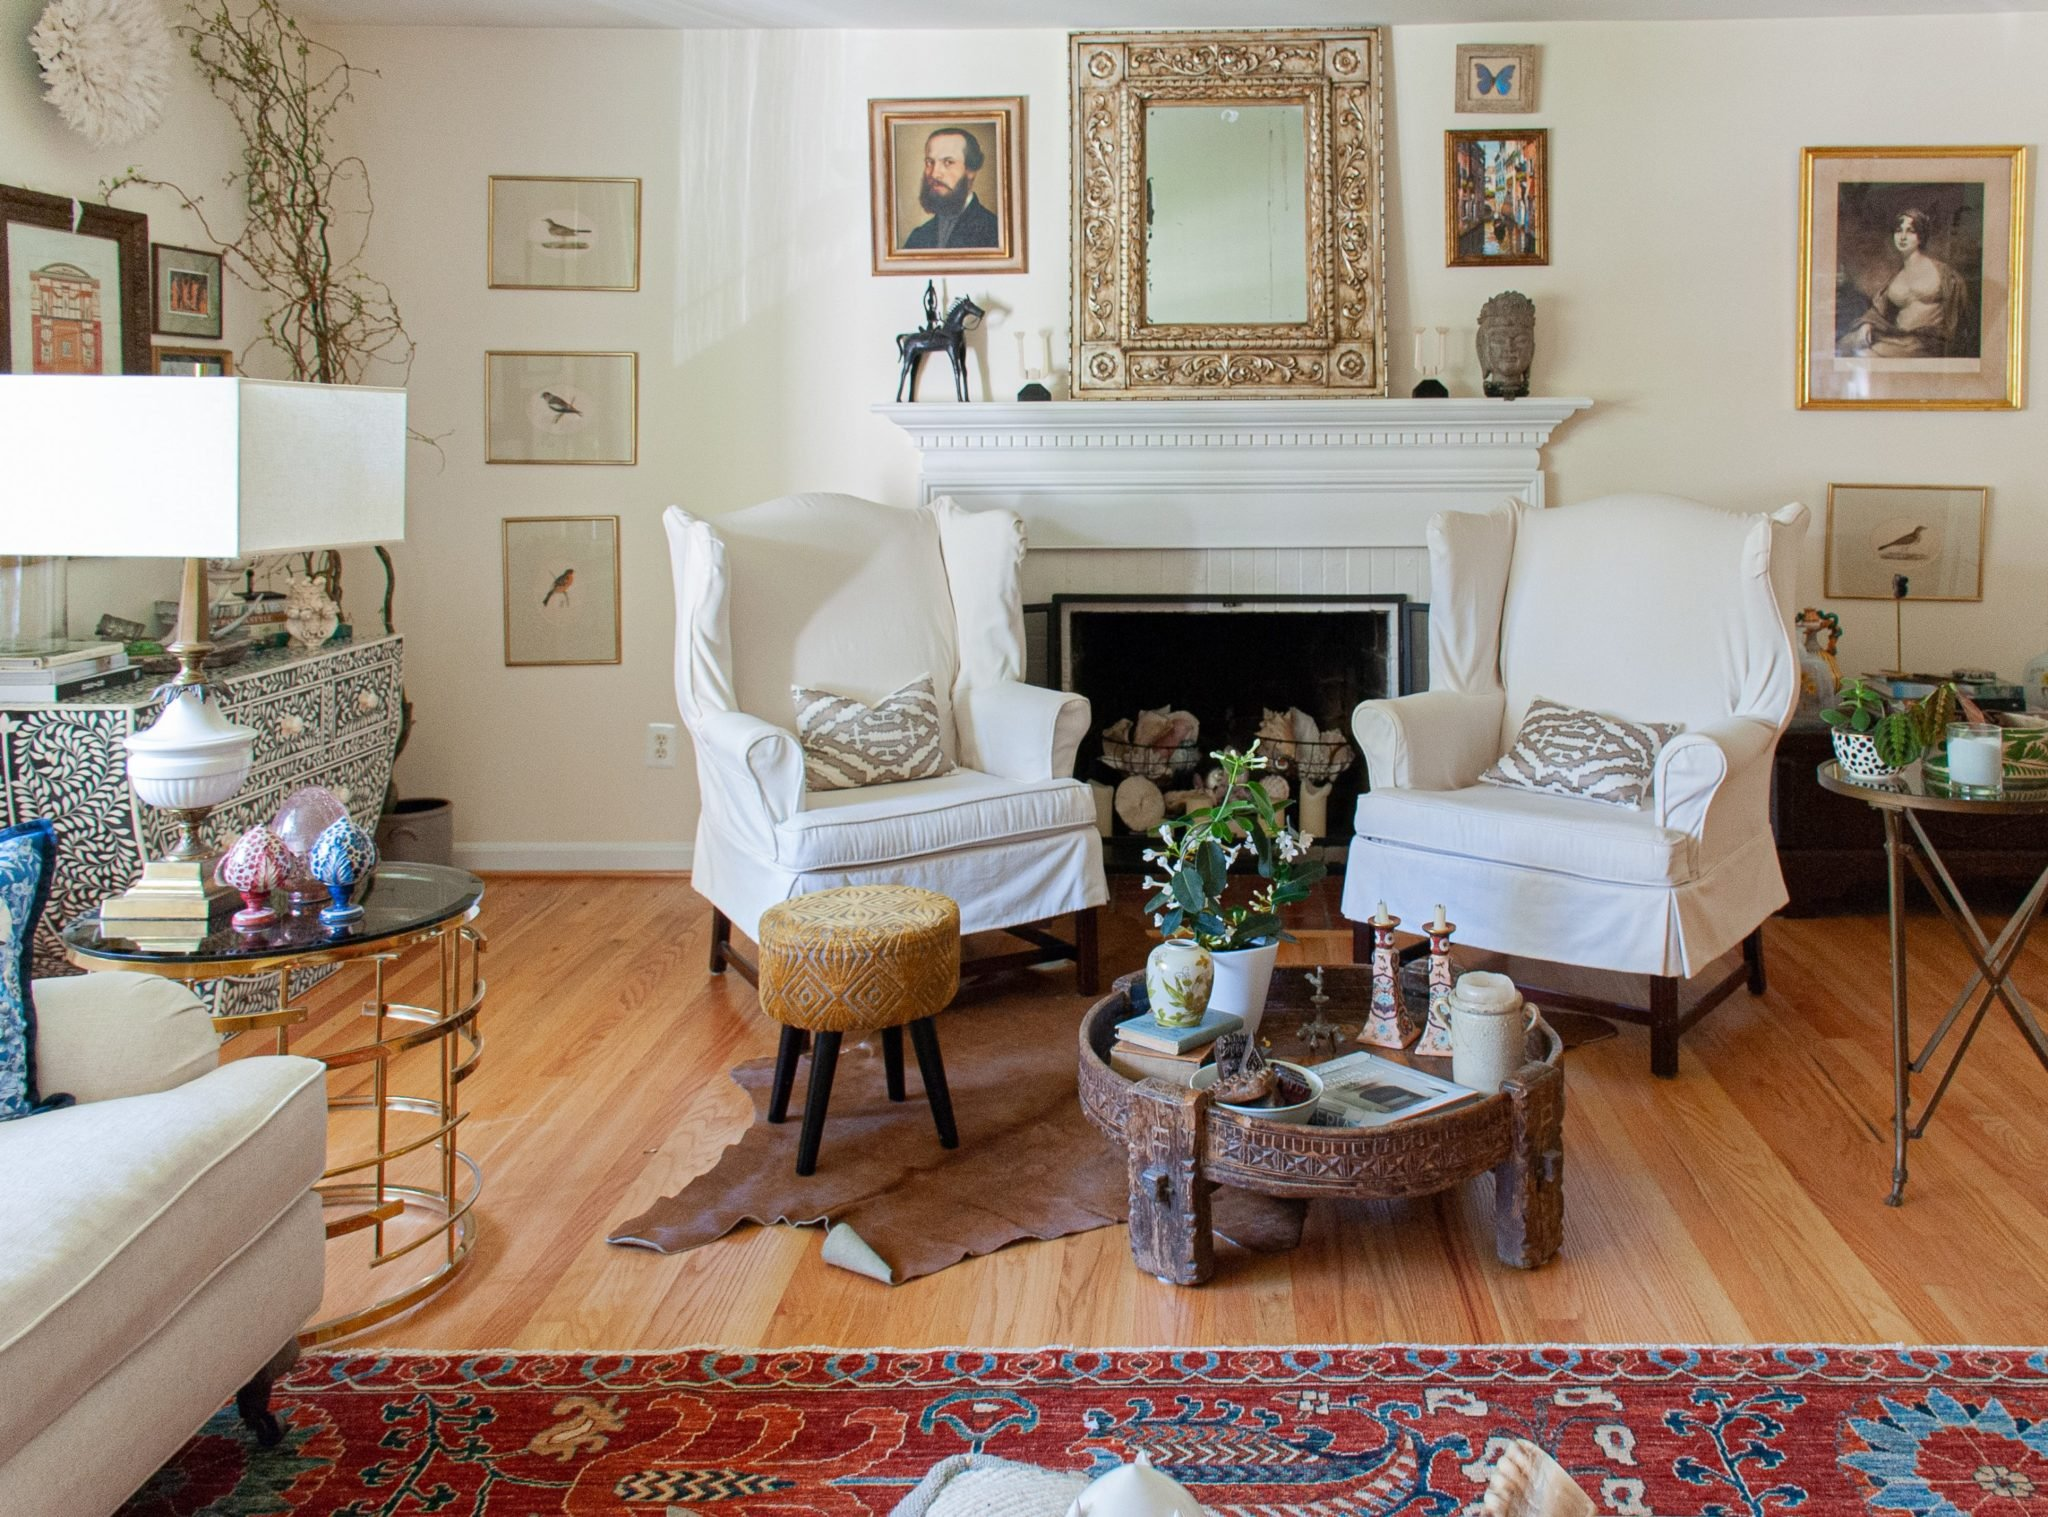 Look Inside My Home: A McLean Rental Filled With Antiques and Travel Finds